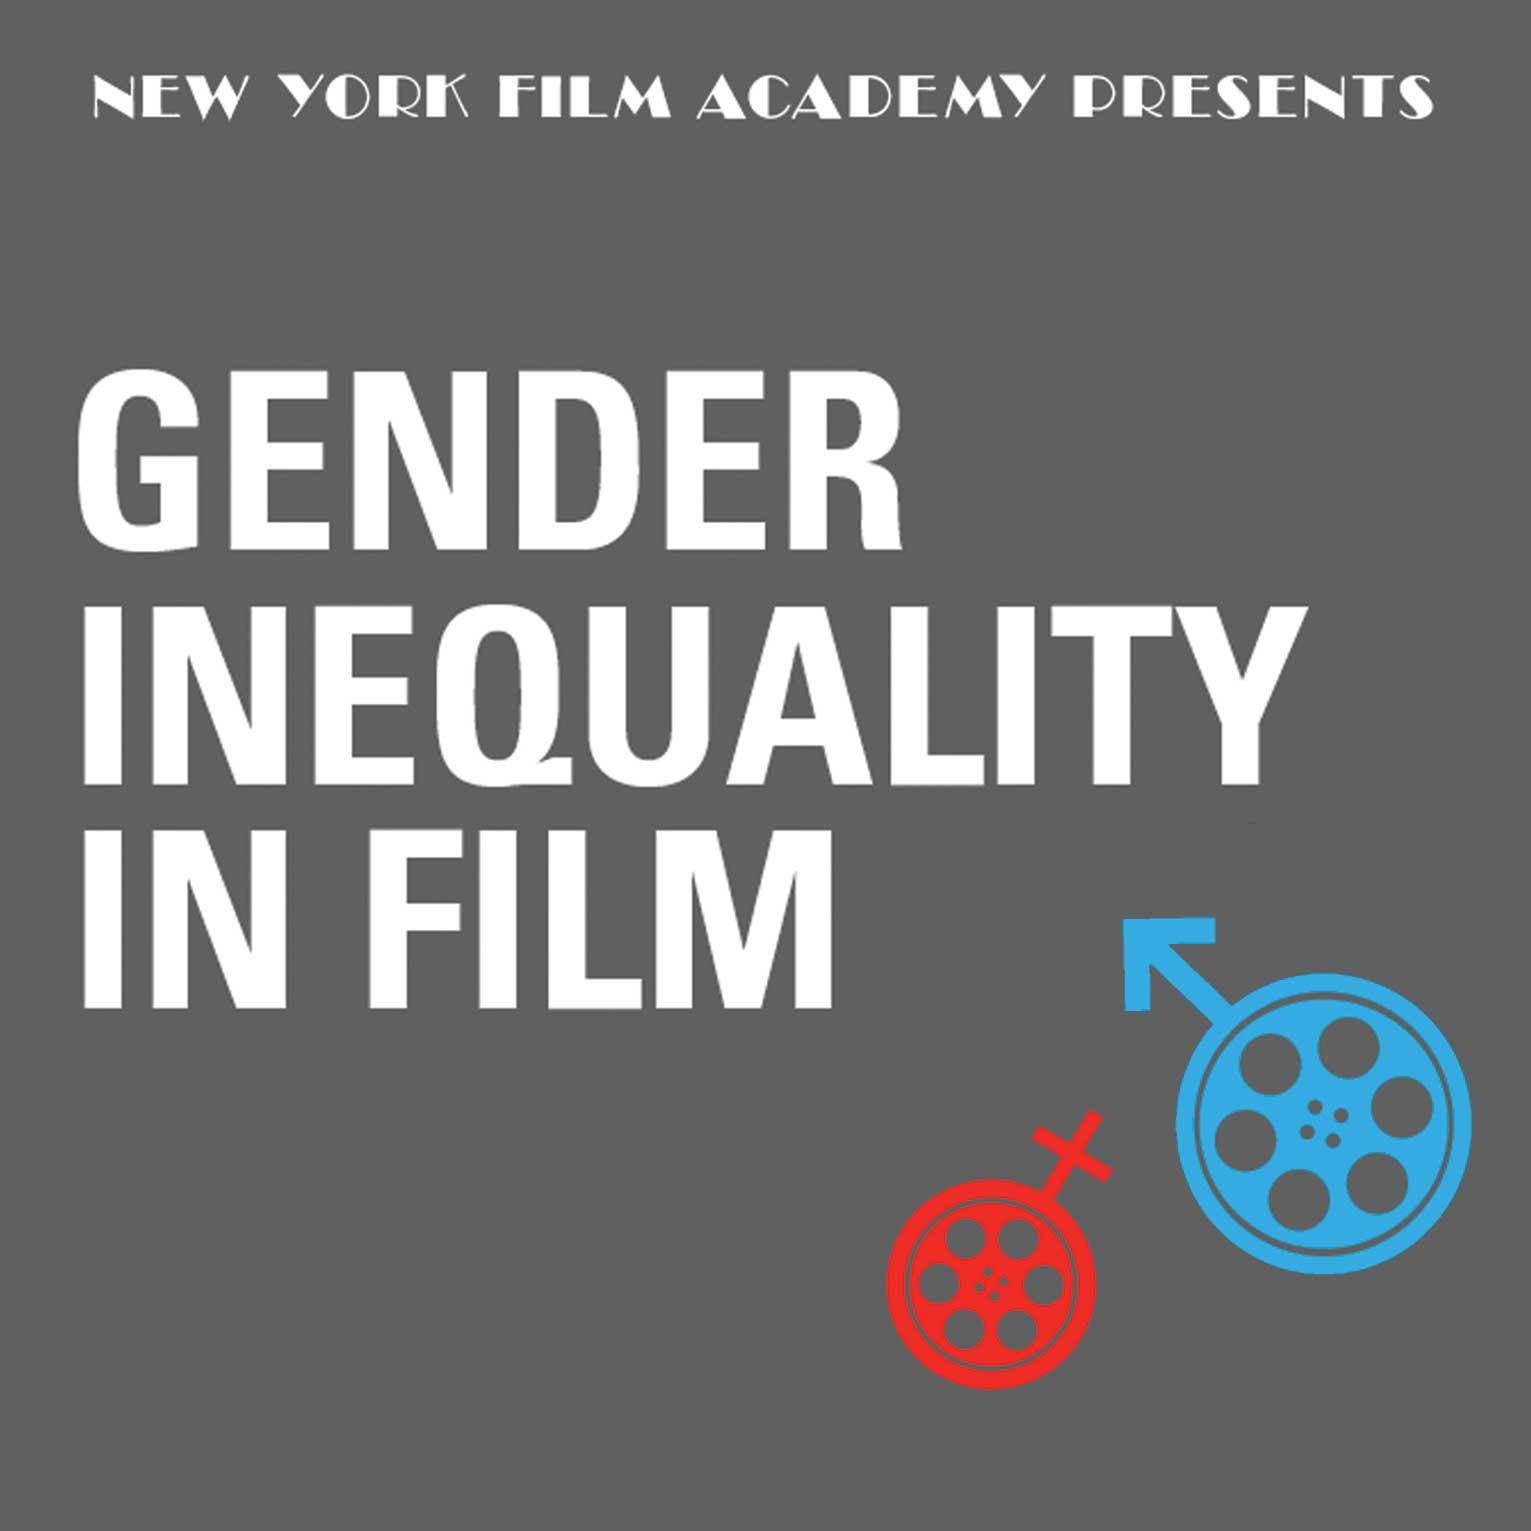 an analysis of gender inequality in the film industry The role of women in film: supporting the men an analysis of how culture influences the changing discourse on gender representations in film.